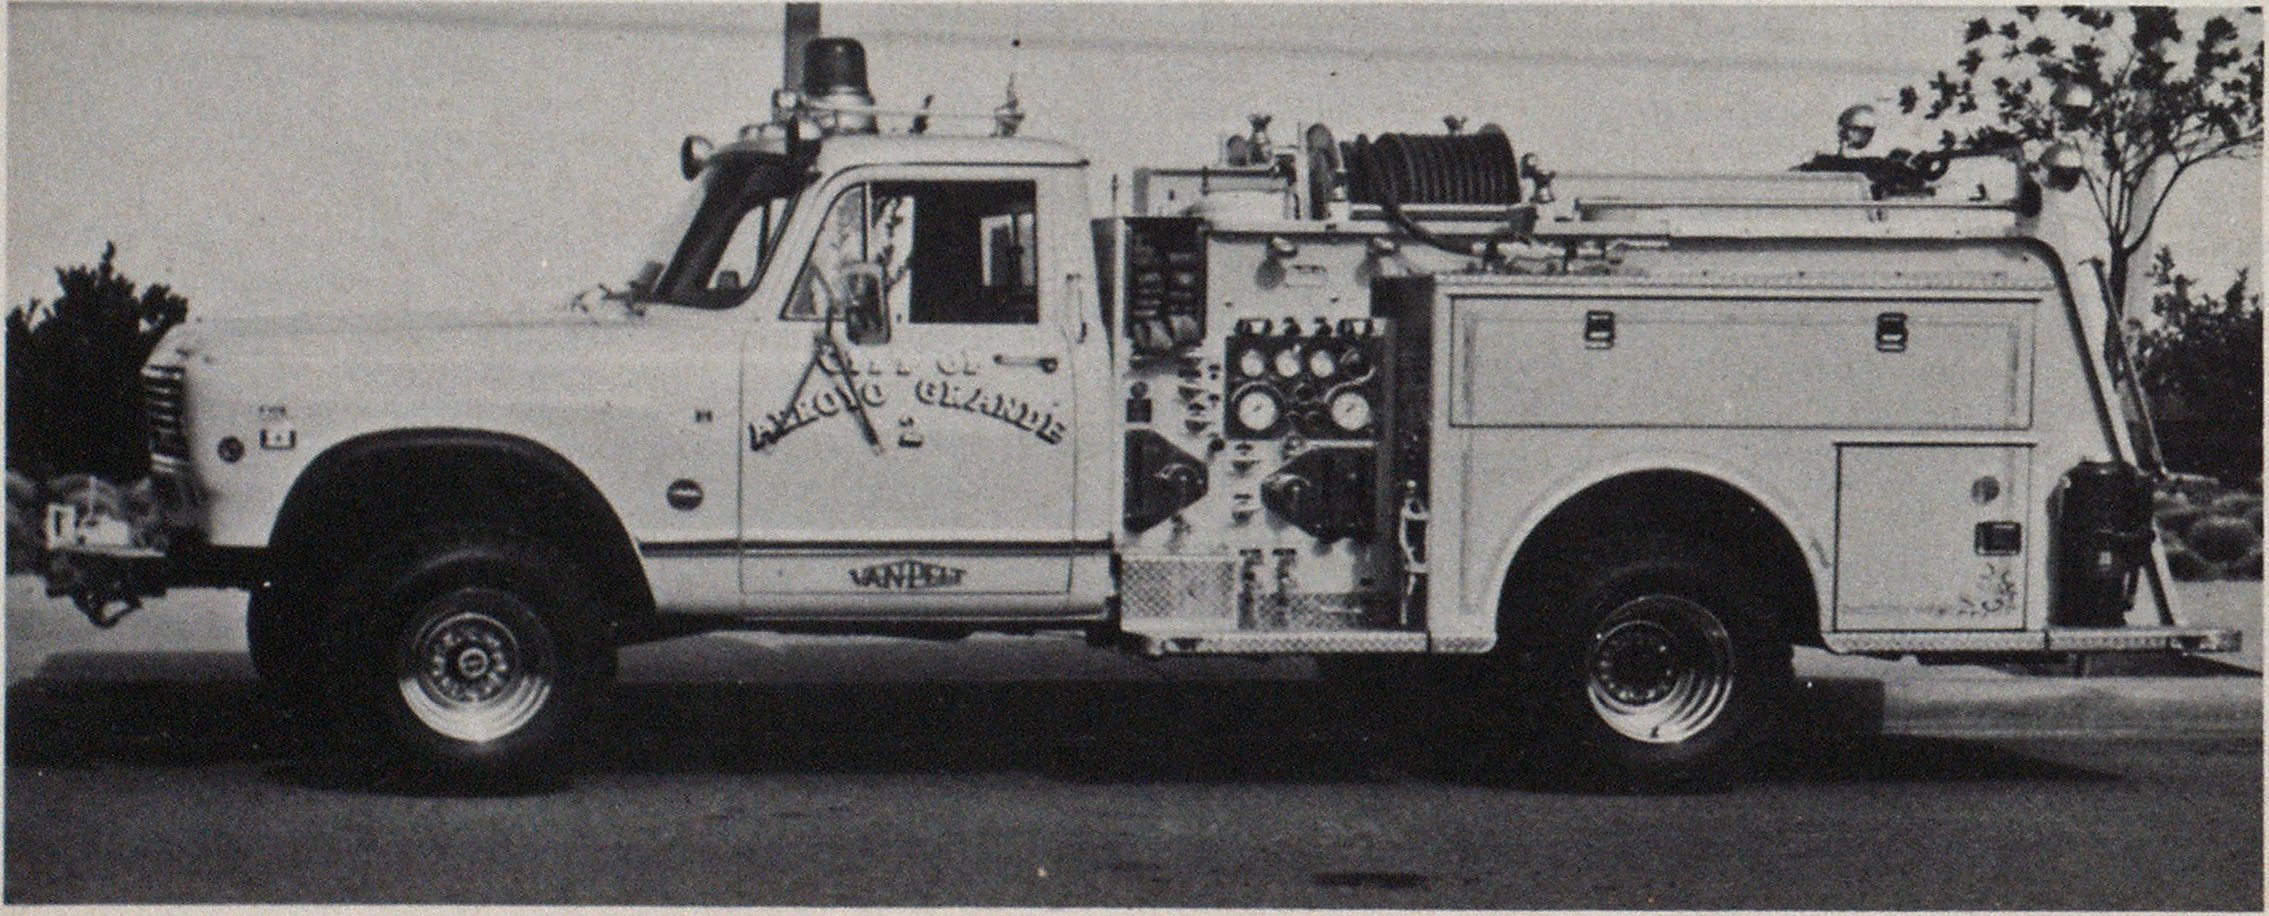 Minipumper was built on four-wheel drive, 1-ton commercial pickup chassis and carries 240 gallons of water.